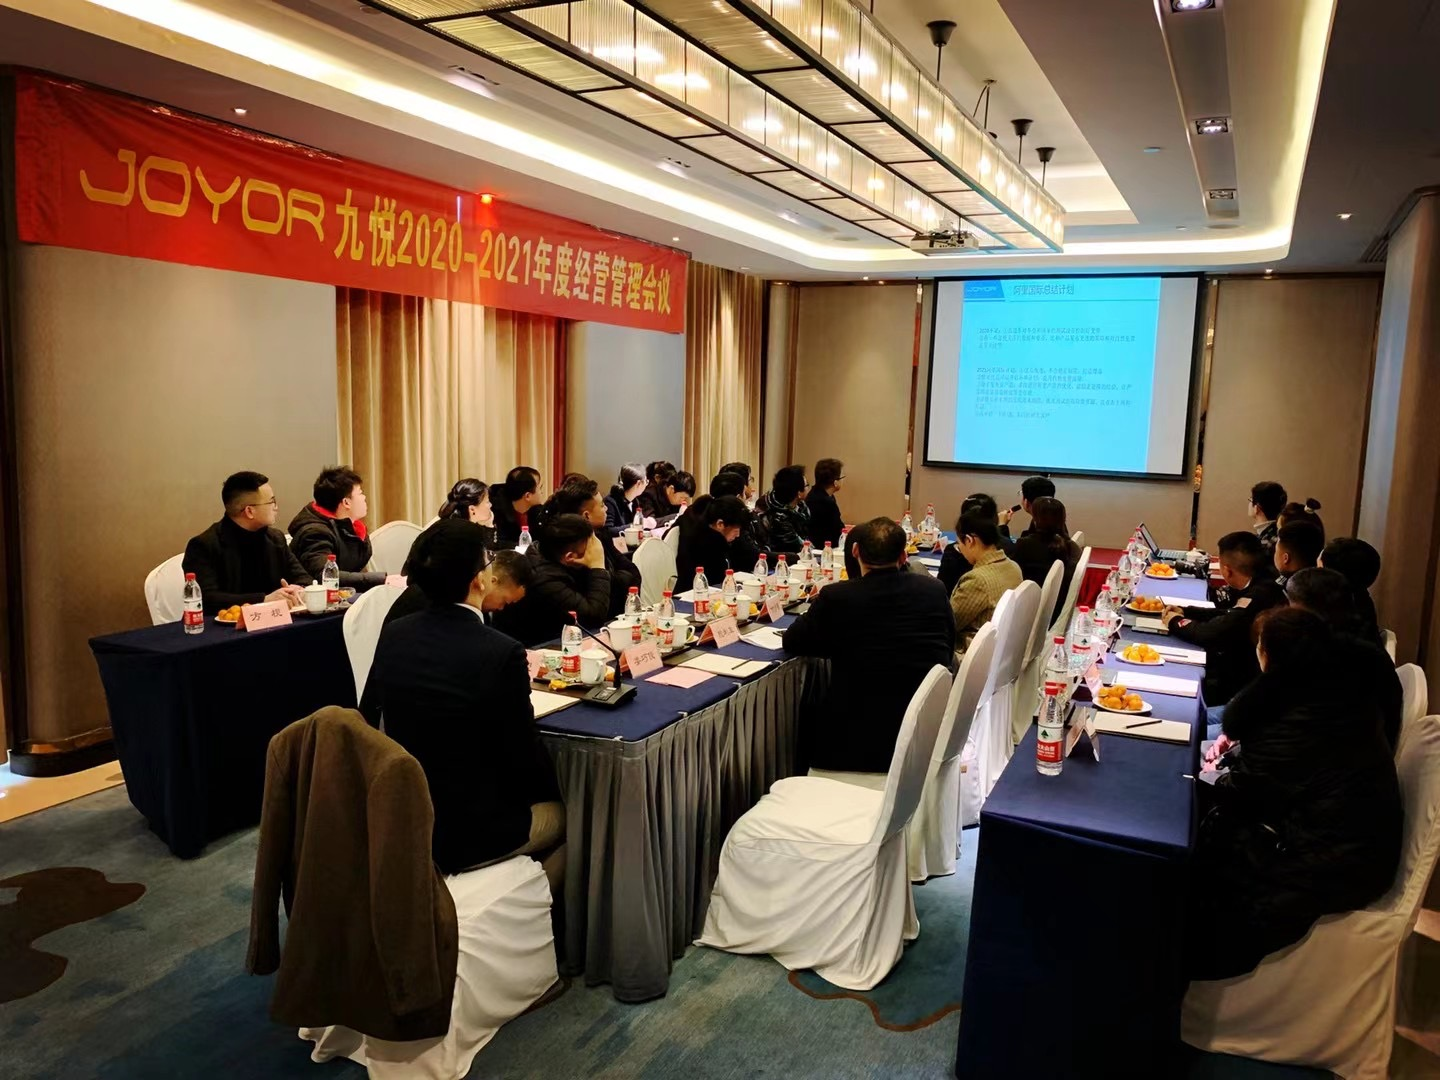 Joyor 2020-2021 Annual Working Conference held successfully